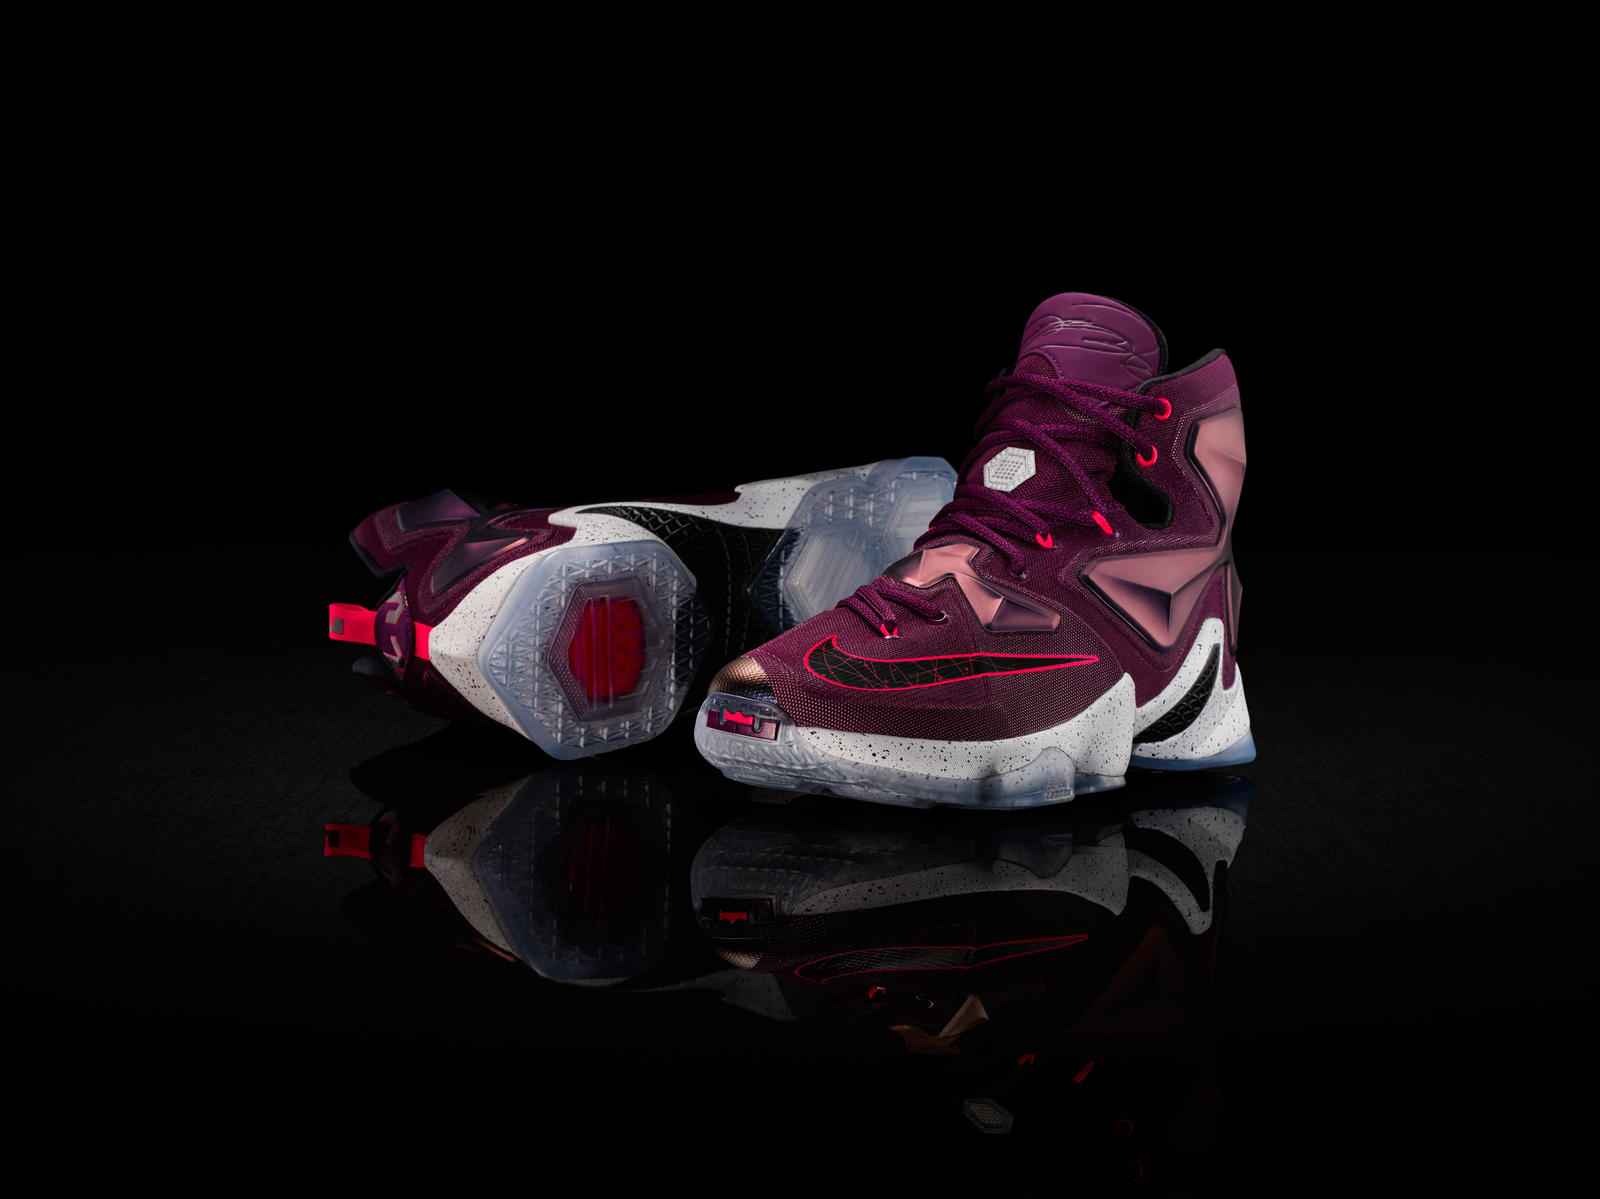 classic fit 78a0c c2f84 LEBRON 13  Built for Explosiveness - Nike News